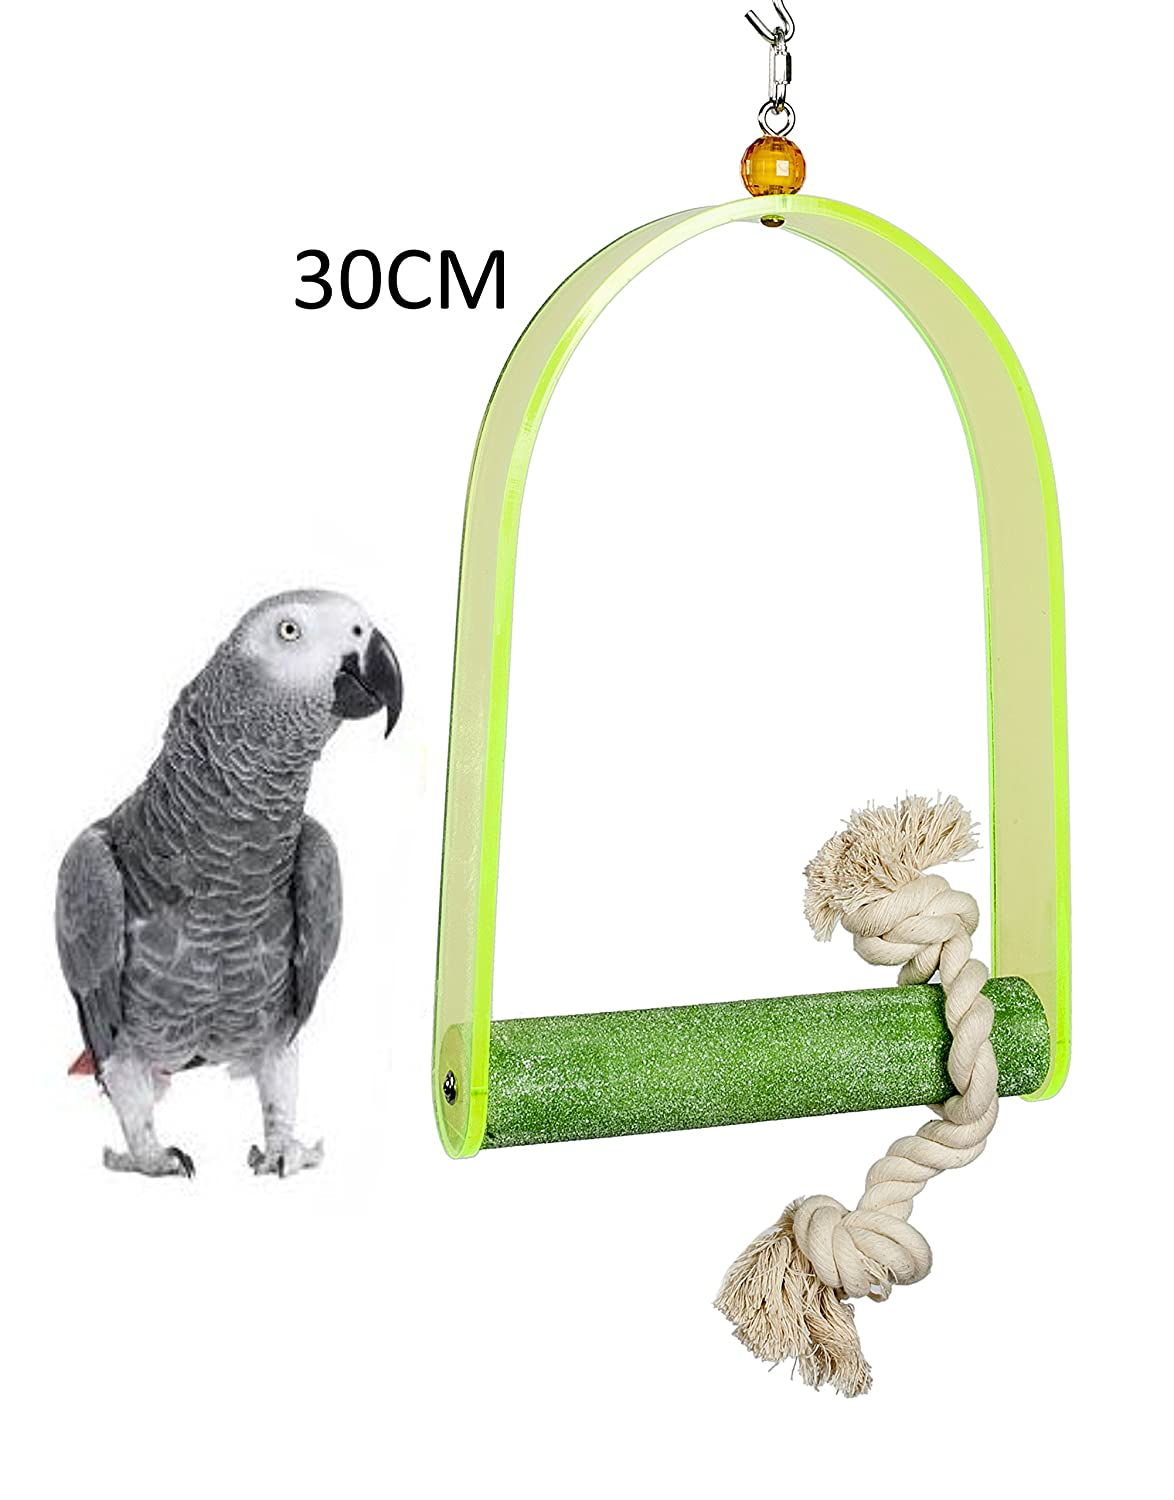 LIBERTA LARGE ACRYLIC TRIMMING PARROT AFRICAN GREY PERCH SWING COLOURS 466L H01